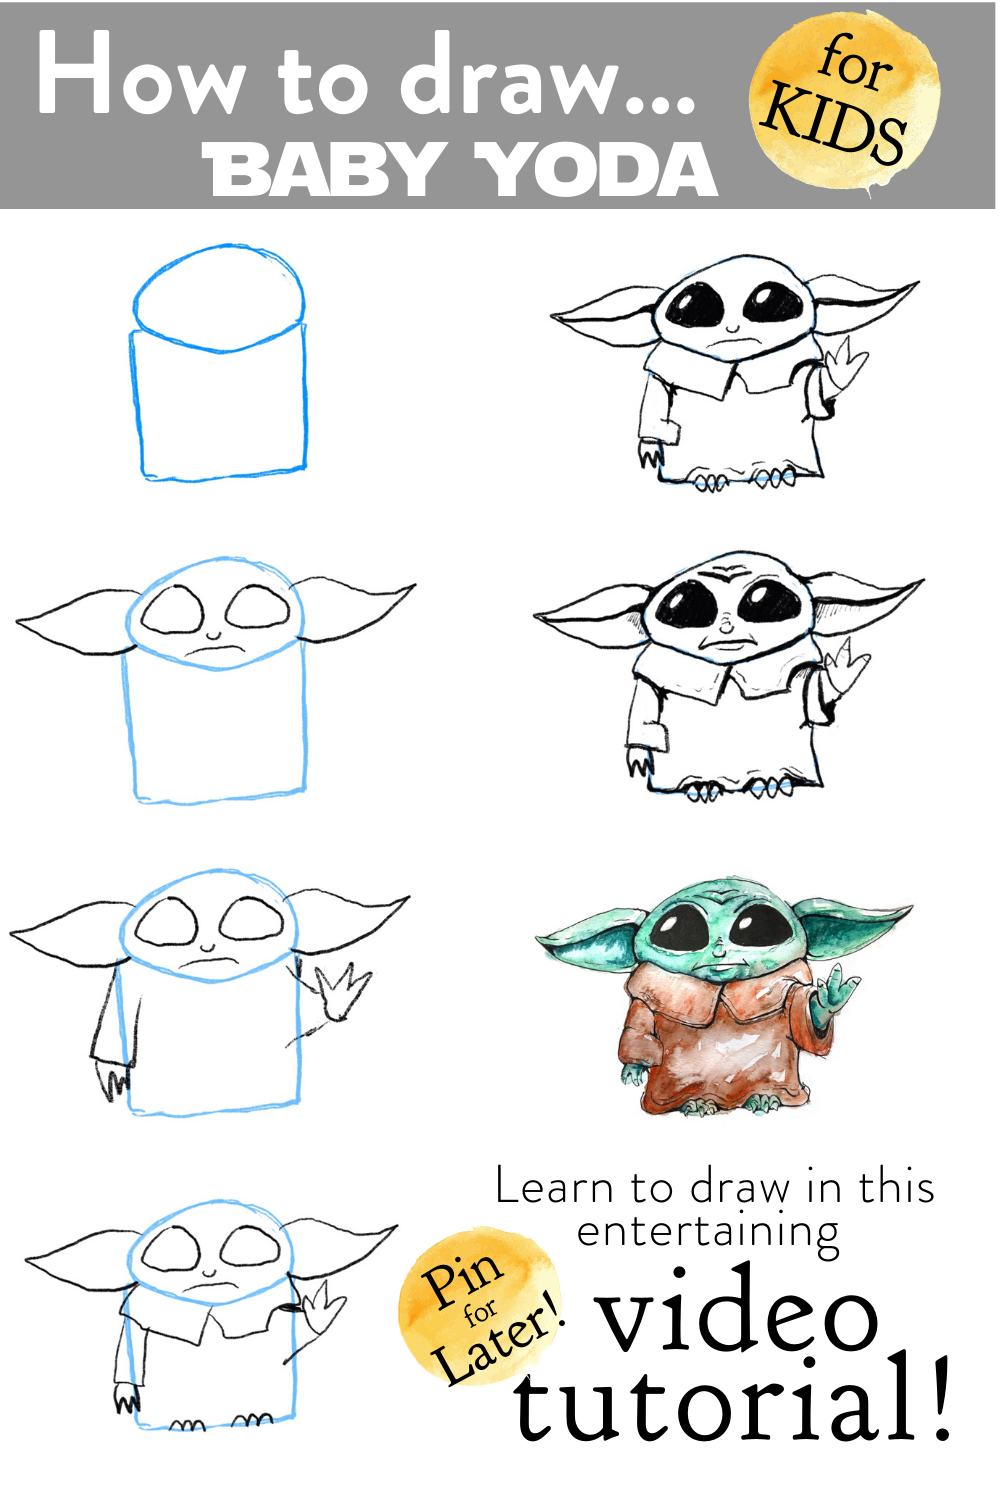 How To Draw Baby Yoda Video Drawing Tutorial Easy Step By Step Art Project For Kids Baby Drawing Drawing Tutorial Drawing Tutorial Easy